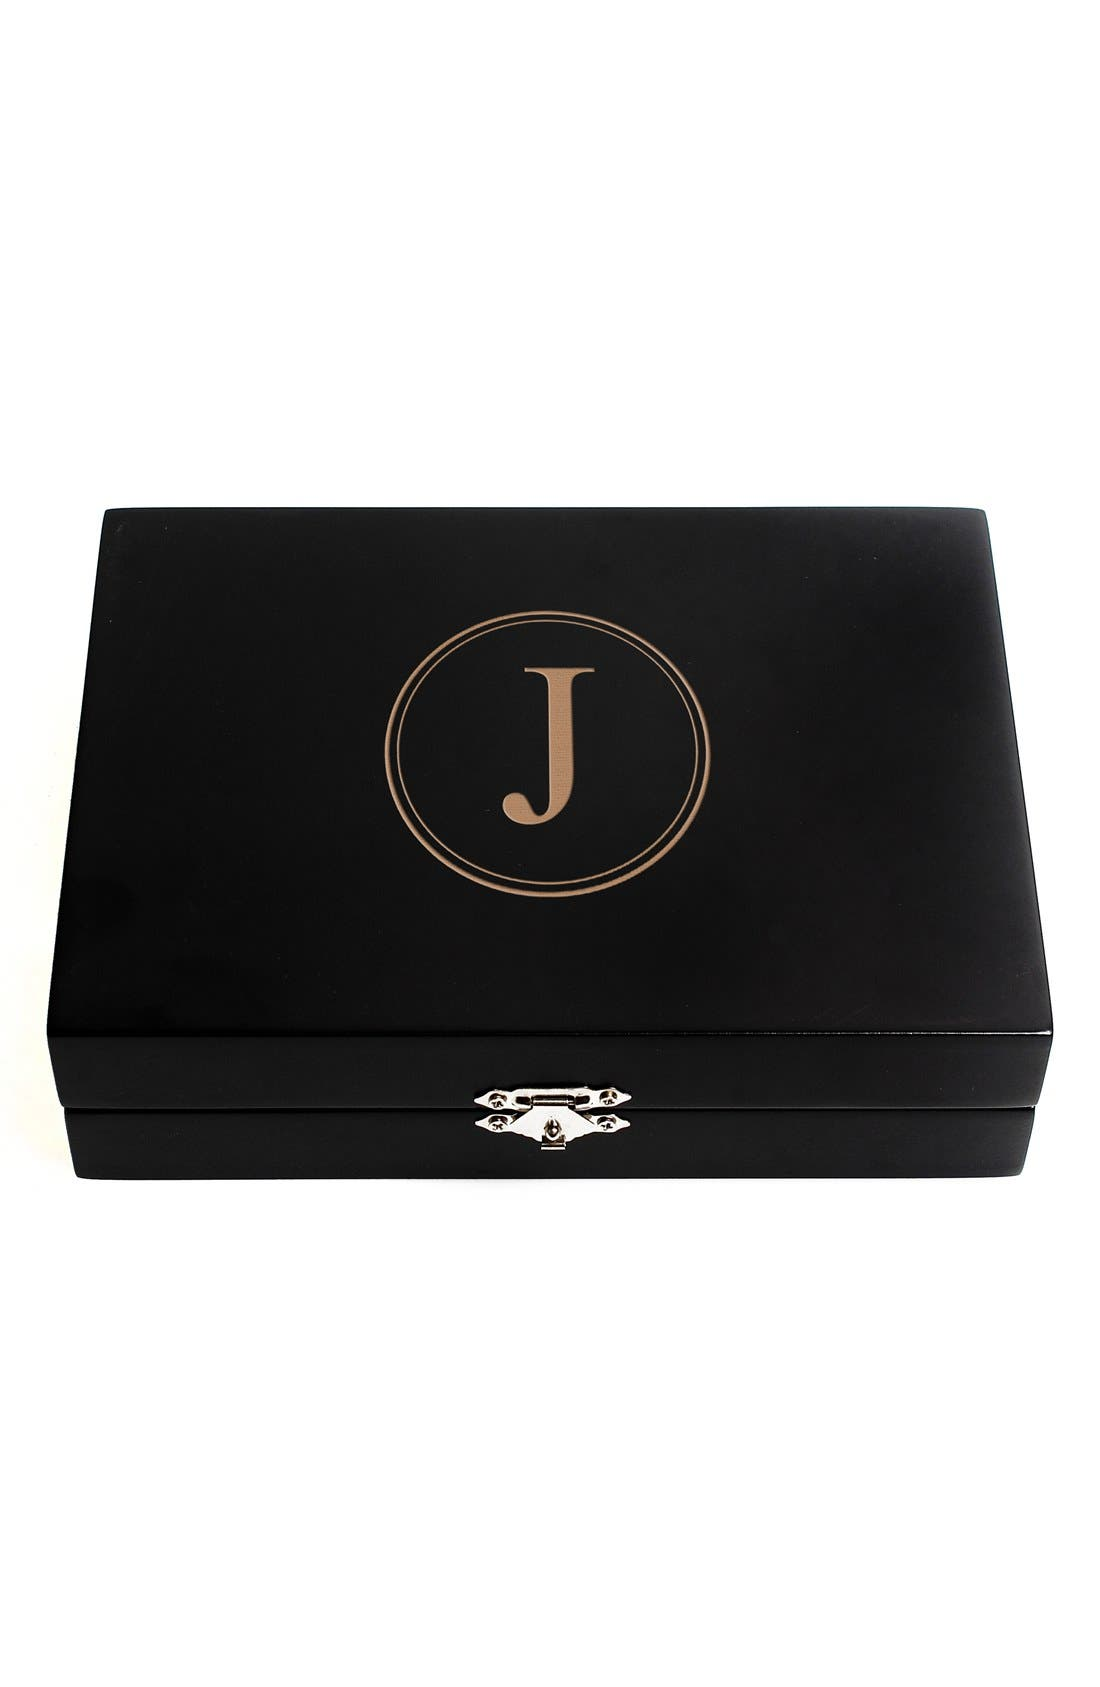 Monogram Wooden Jewelry Box,                             Main thumbnail 12, color,